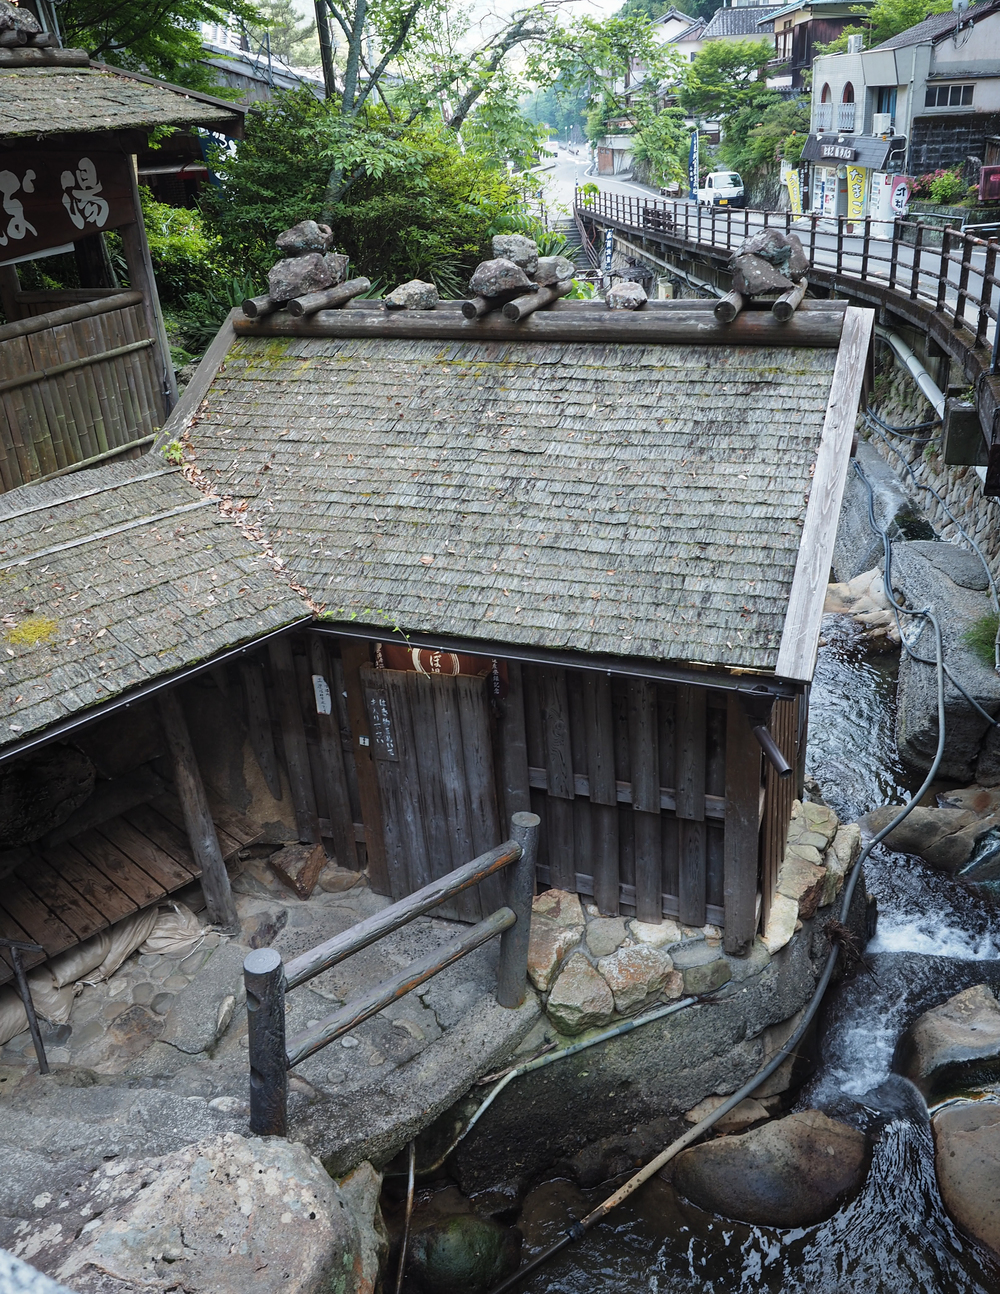 Tsuyobu, the small World Heritage Onsen